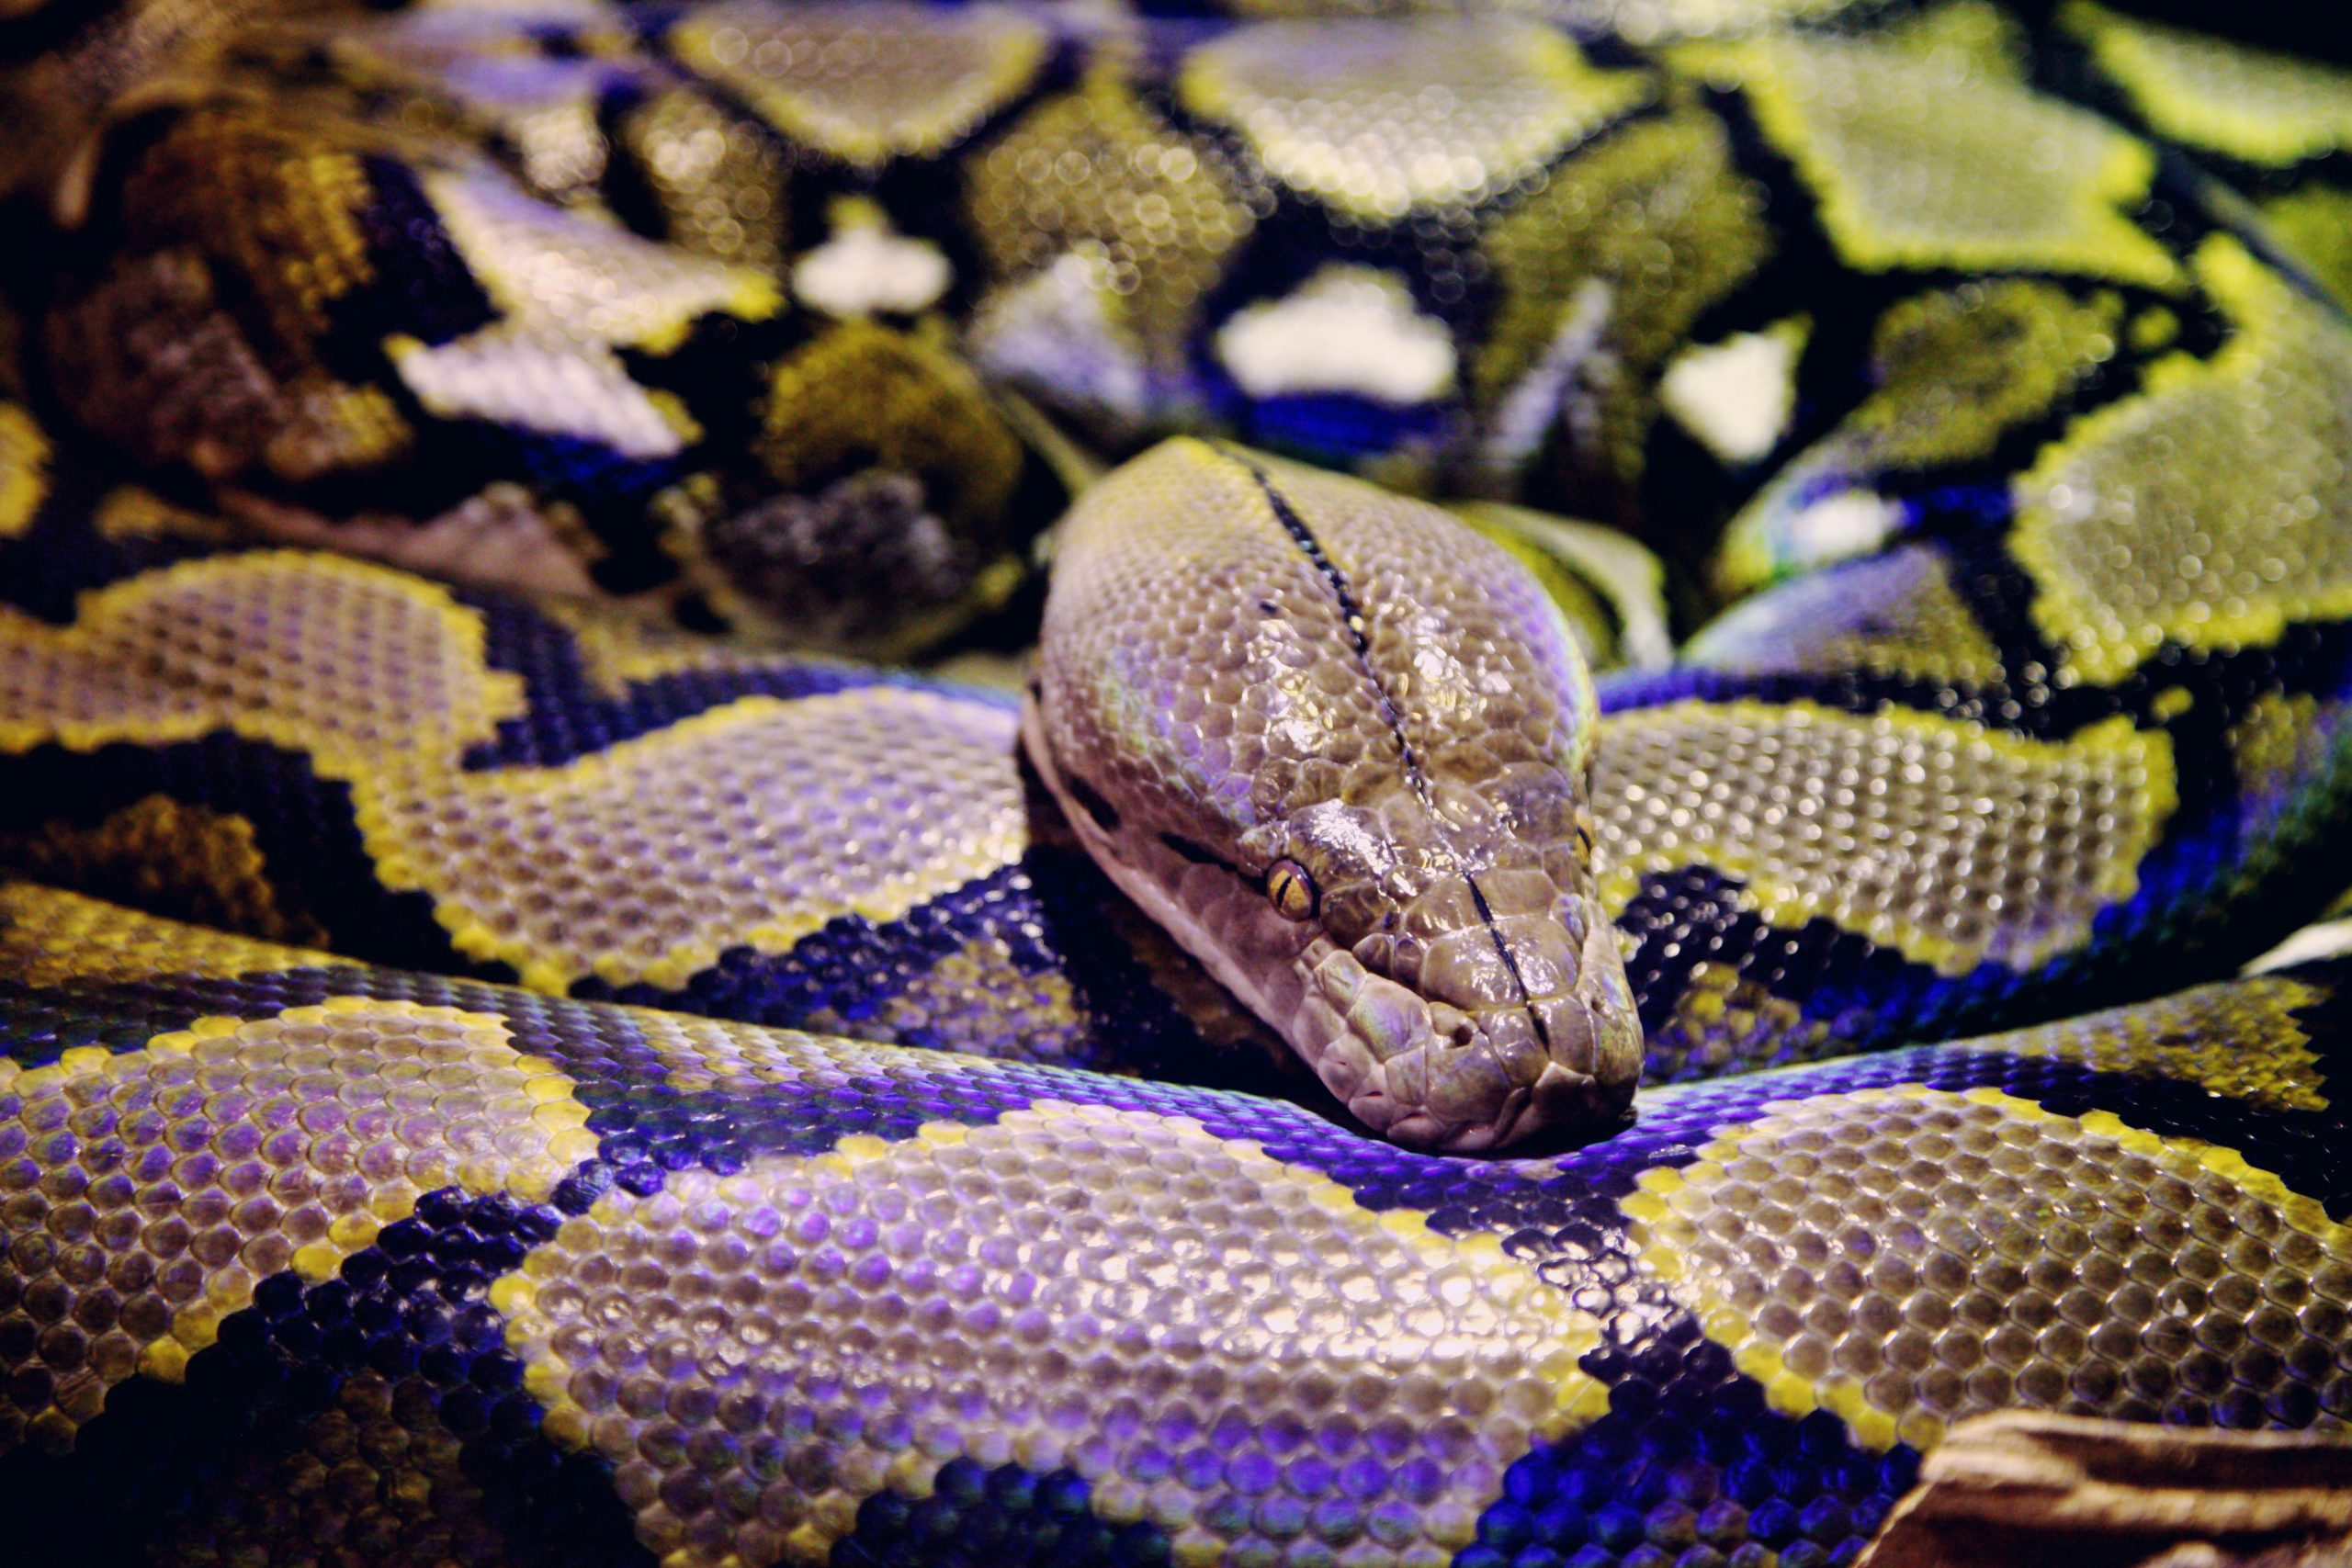 PETA is Calling to End 2020 Python Bowl Where Citizens are Trained to Hunt and Kill Snakes Inhumanely